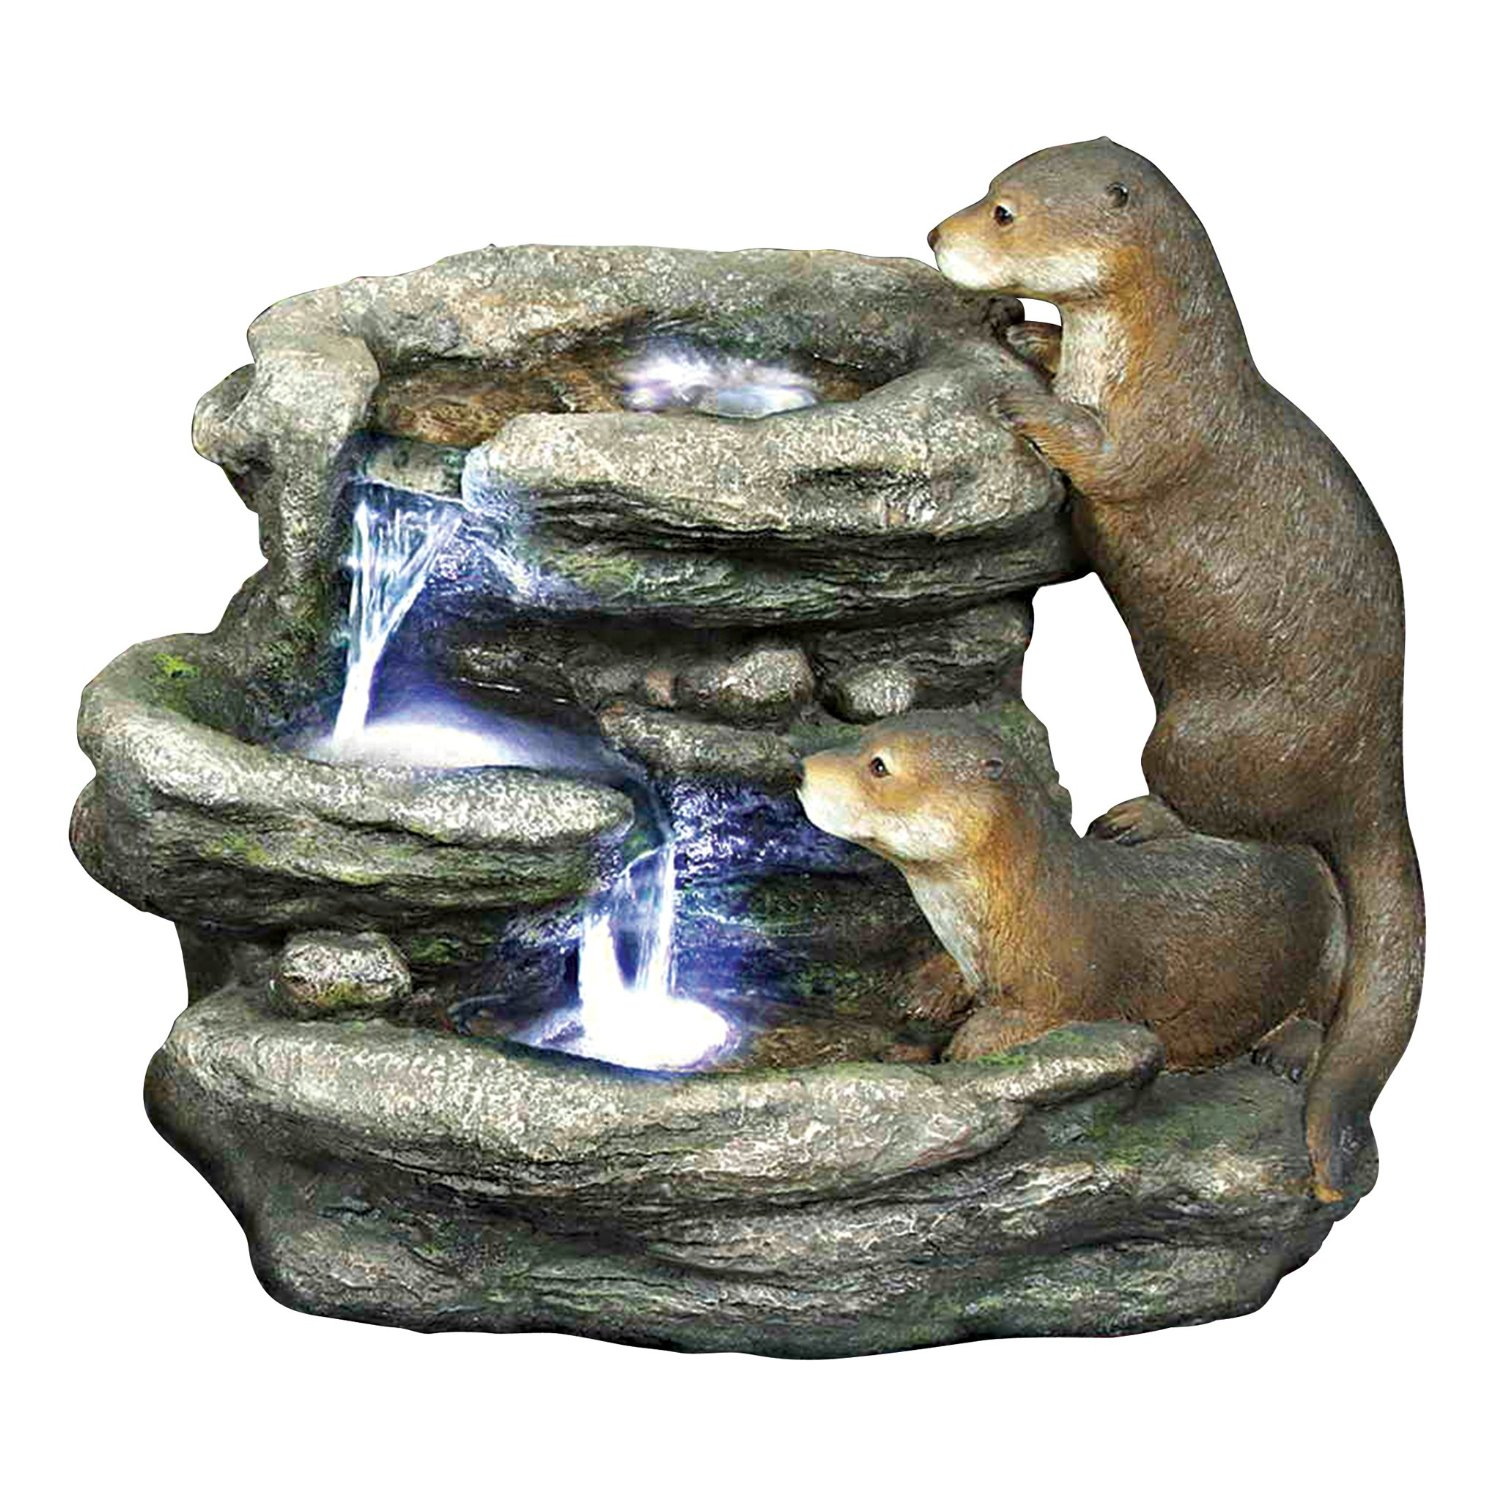 Otter water fountain